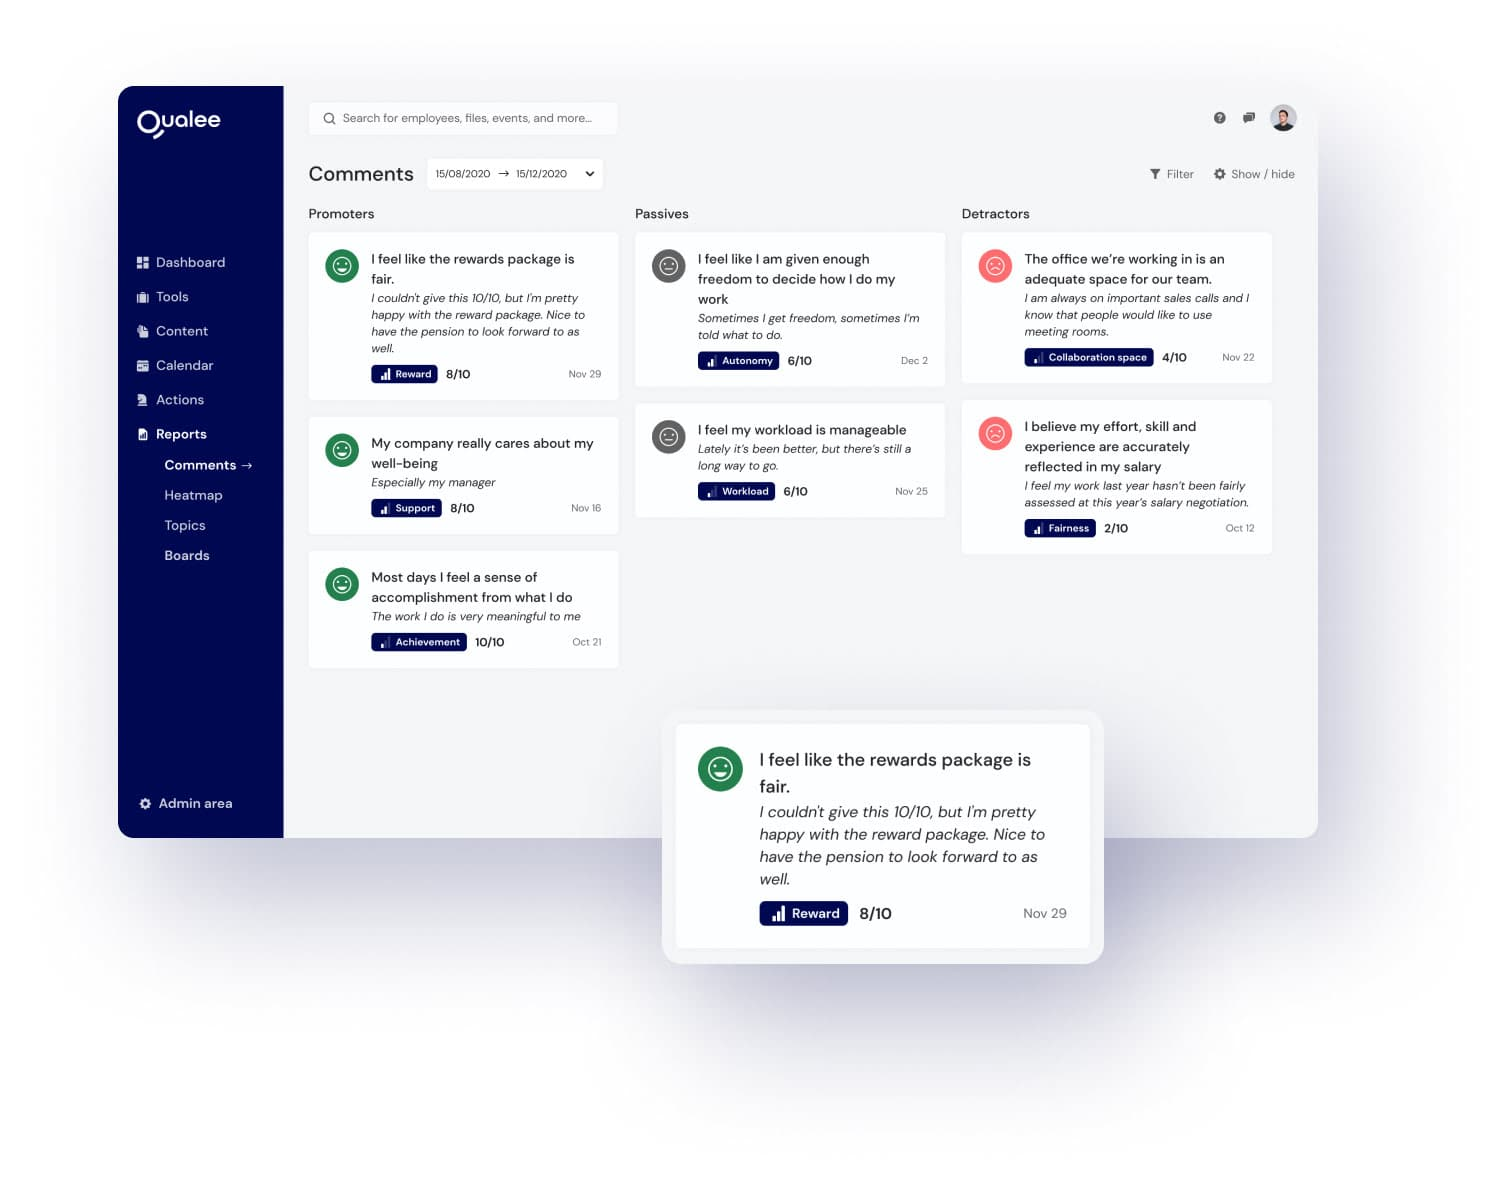 Qualee Employee Onboarding App - Comment Section